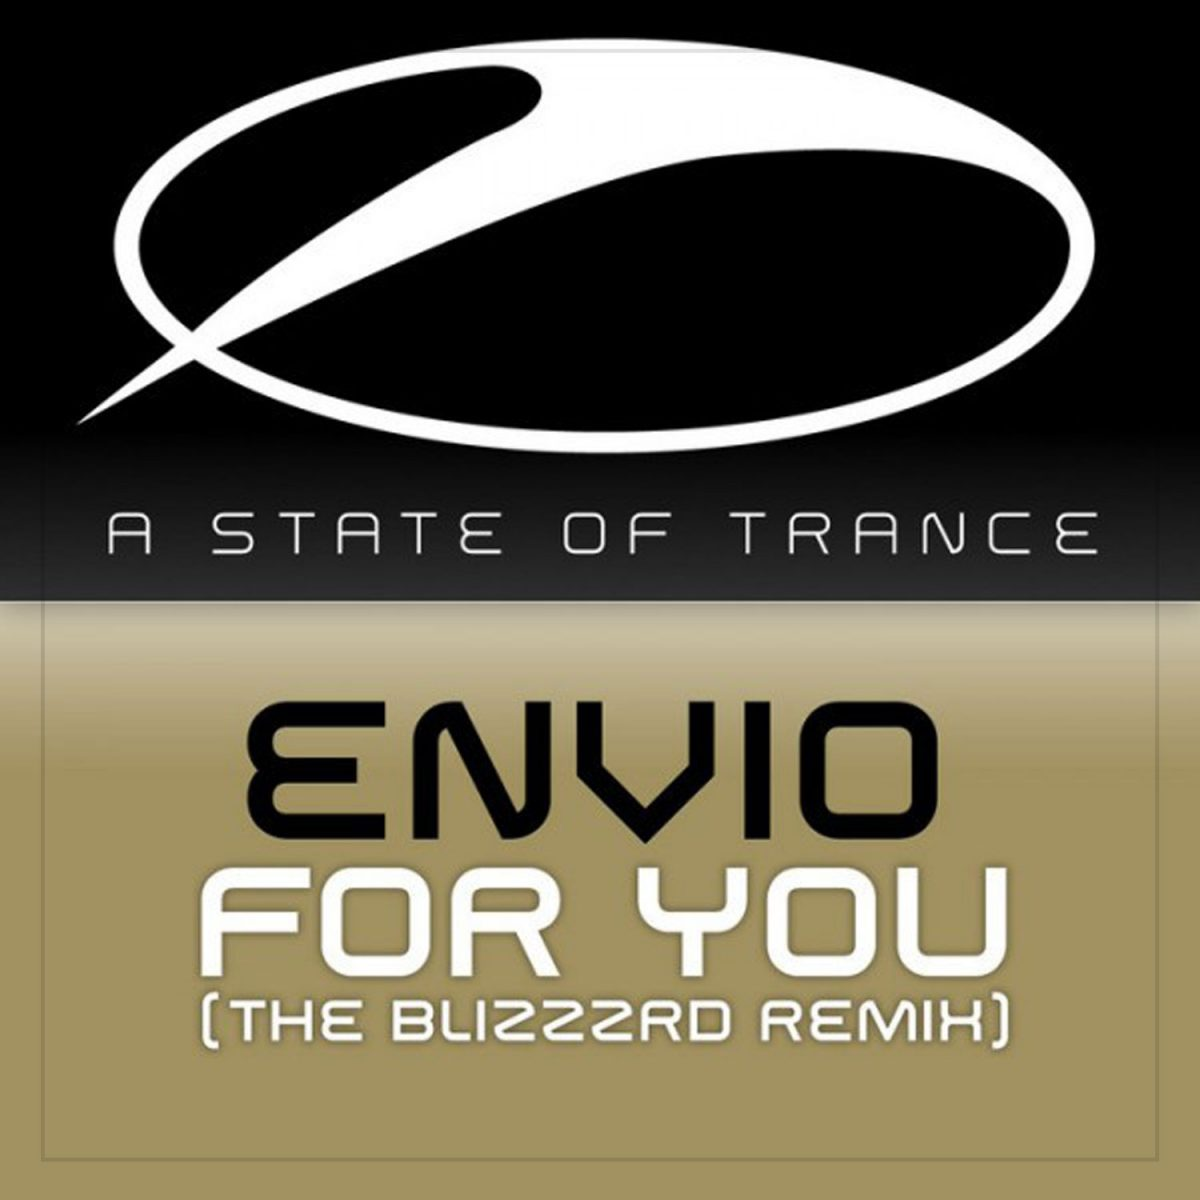 Envio - For You (The Blizzard Remix) on Armada Music (A State of Trance)